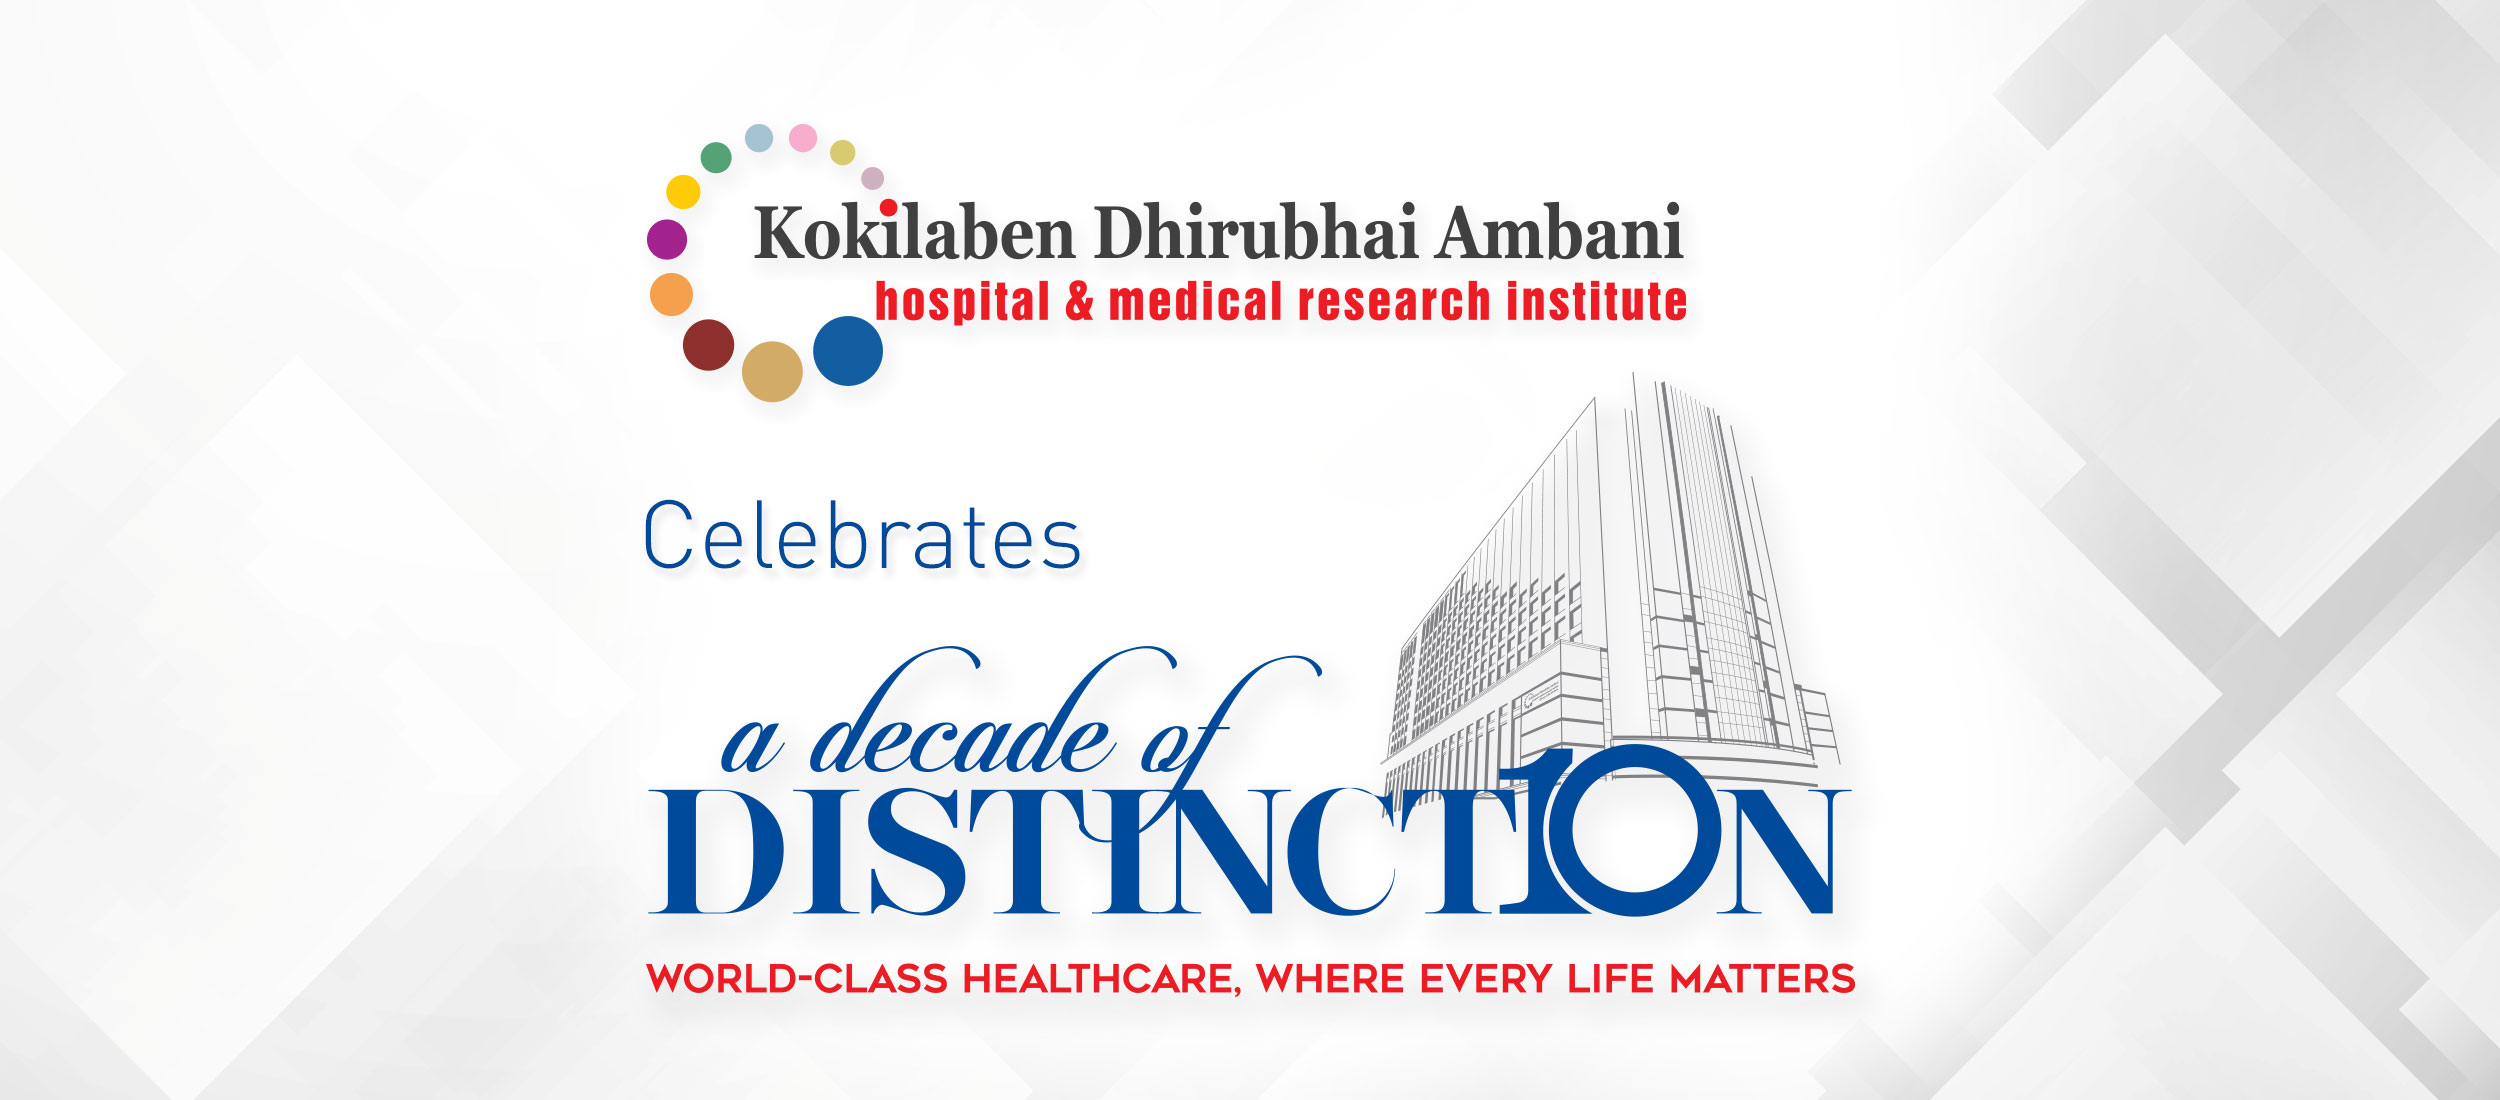 Kokilaben Dhirubhai Ambani Hospital - A Decade of Distinction - Guest of Honour Shri Amitabh Bachchan - To Inspire Us Further